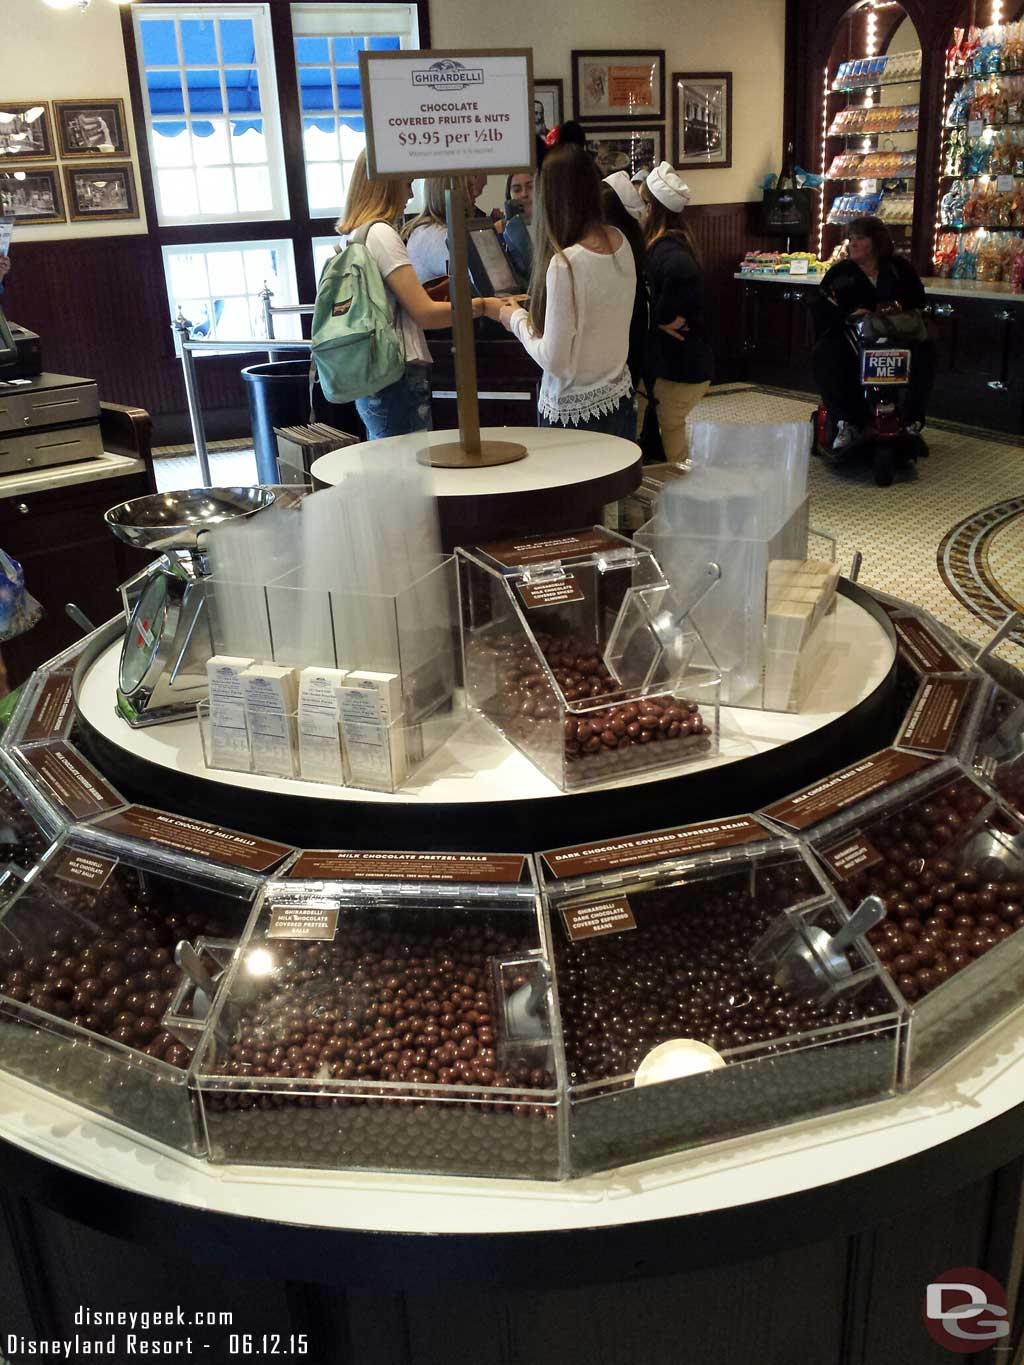 Ghirardelli has a new display featuring chocolate covered fruits & nuts